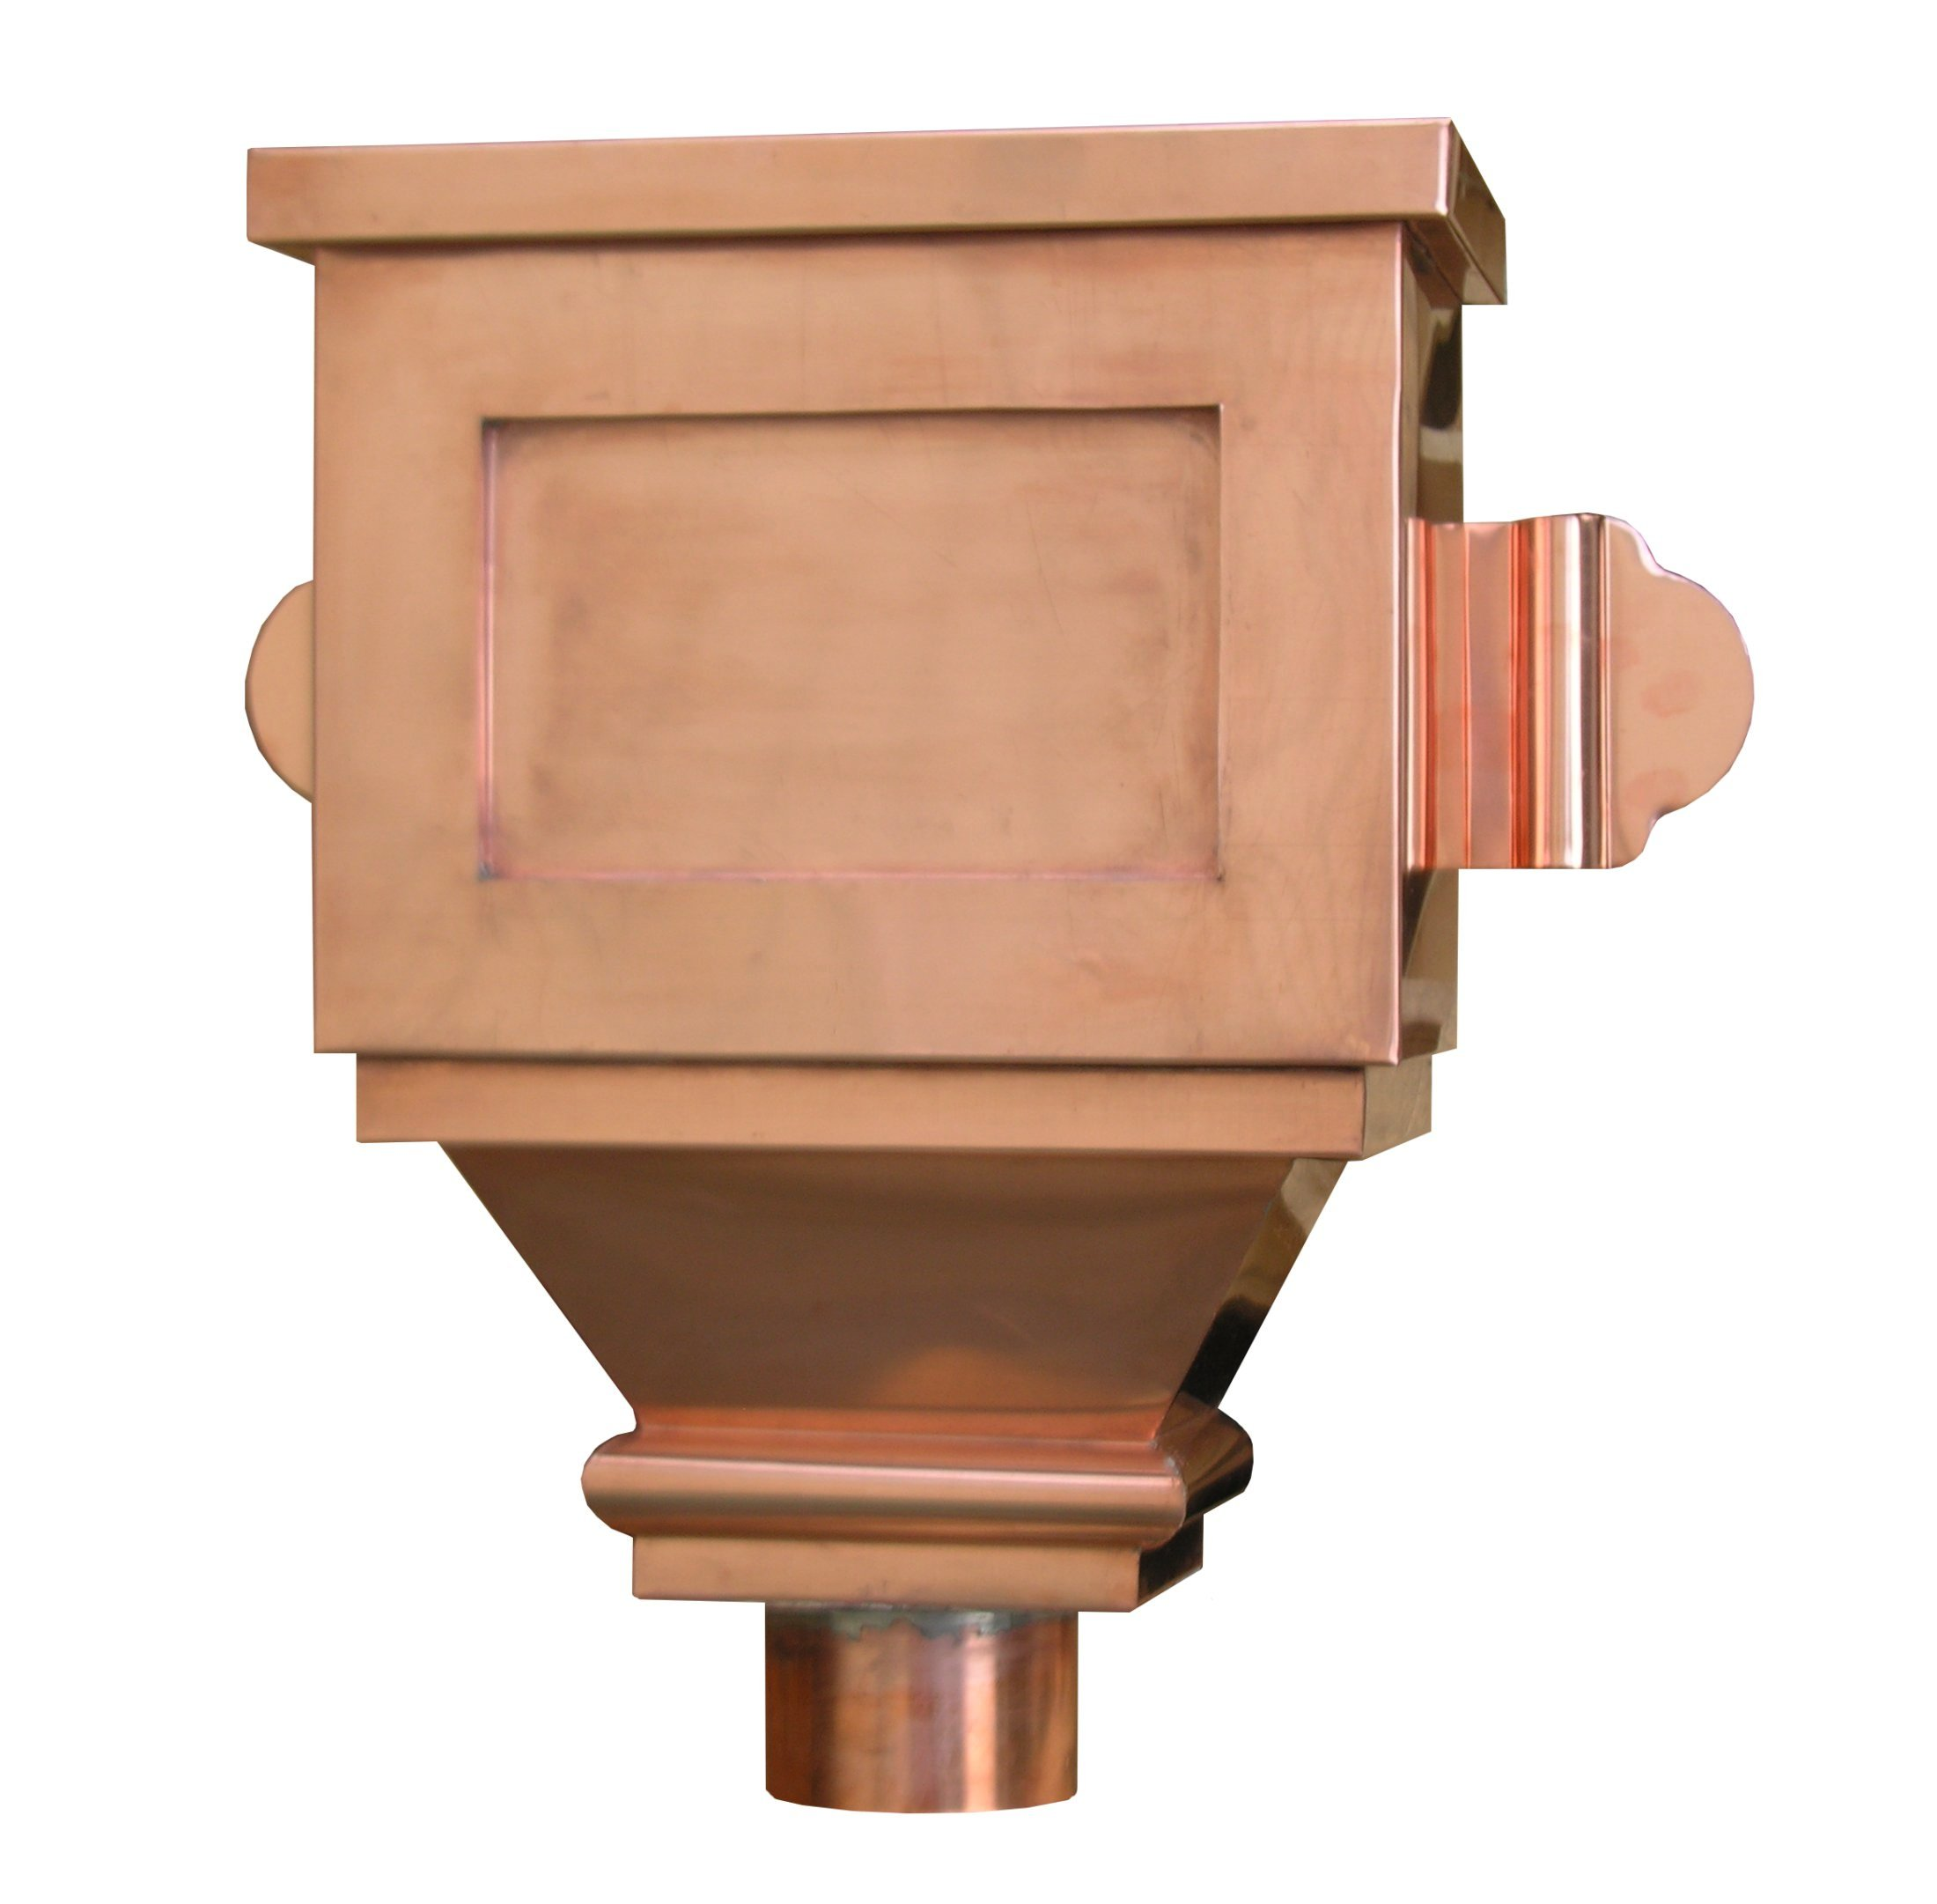 The Coventry Copper Conductor Head